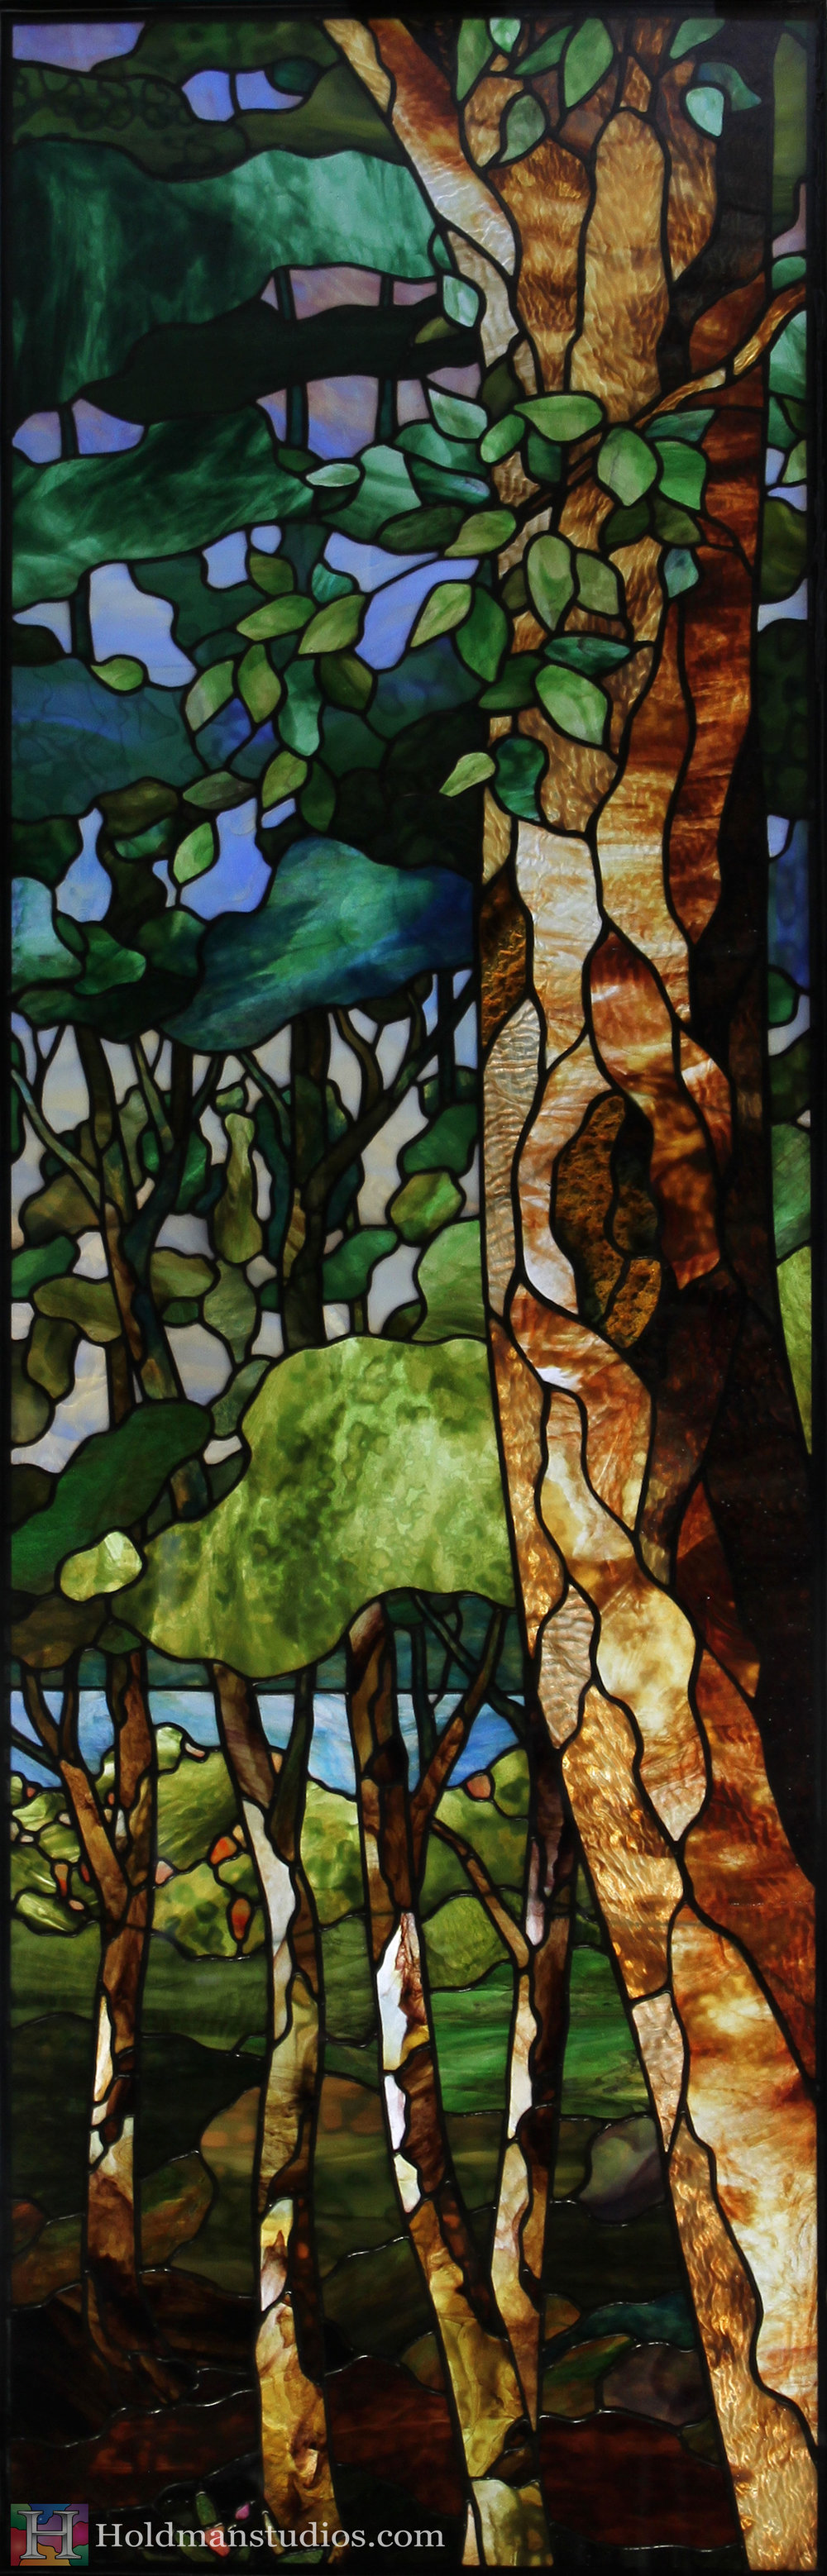 Holdman_Studios_Stained_Art_Glass_LDS_Mormon_Temple_Boise_Idaho_Baptistry_Window_Crop_Forest_Trees_Leaves.jpg